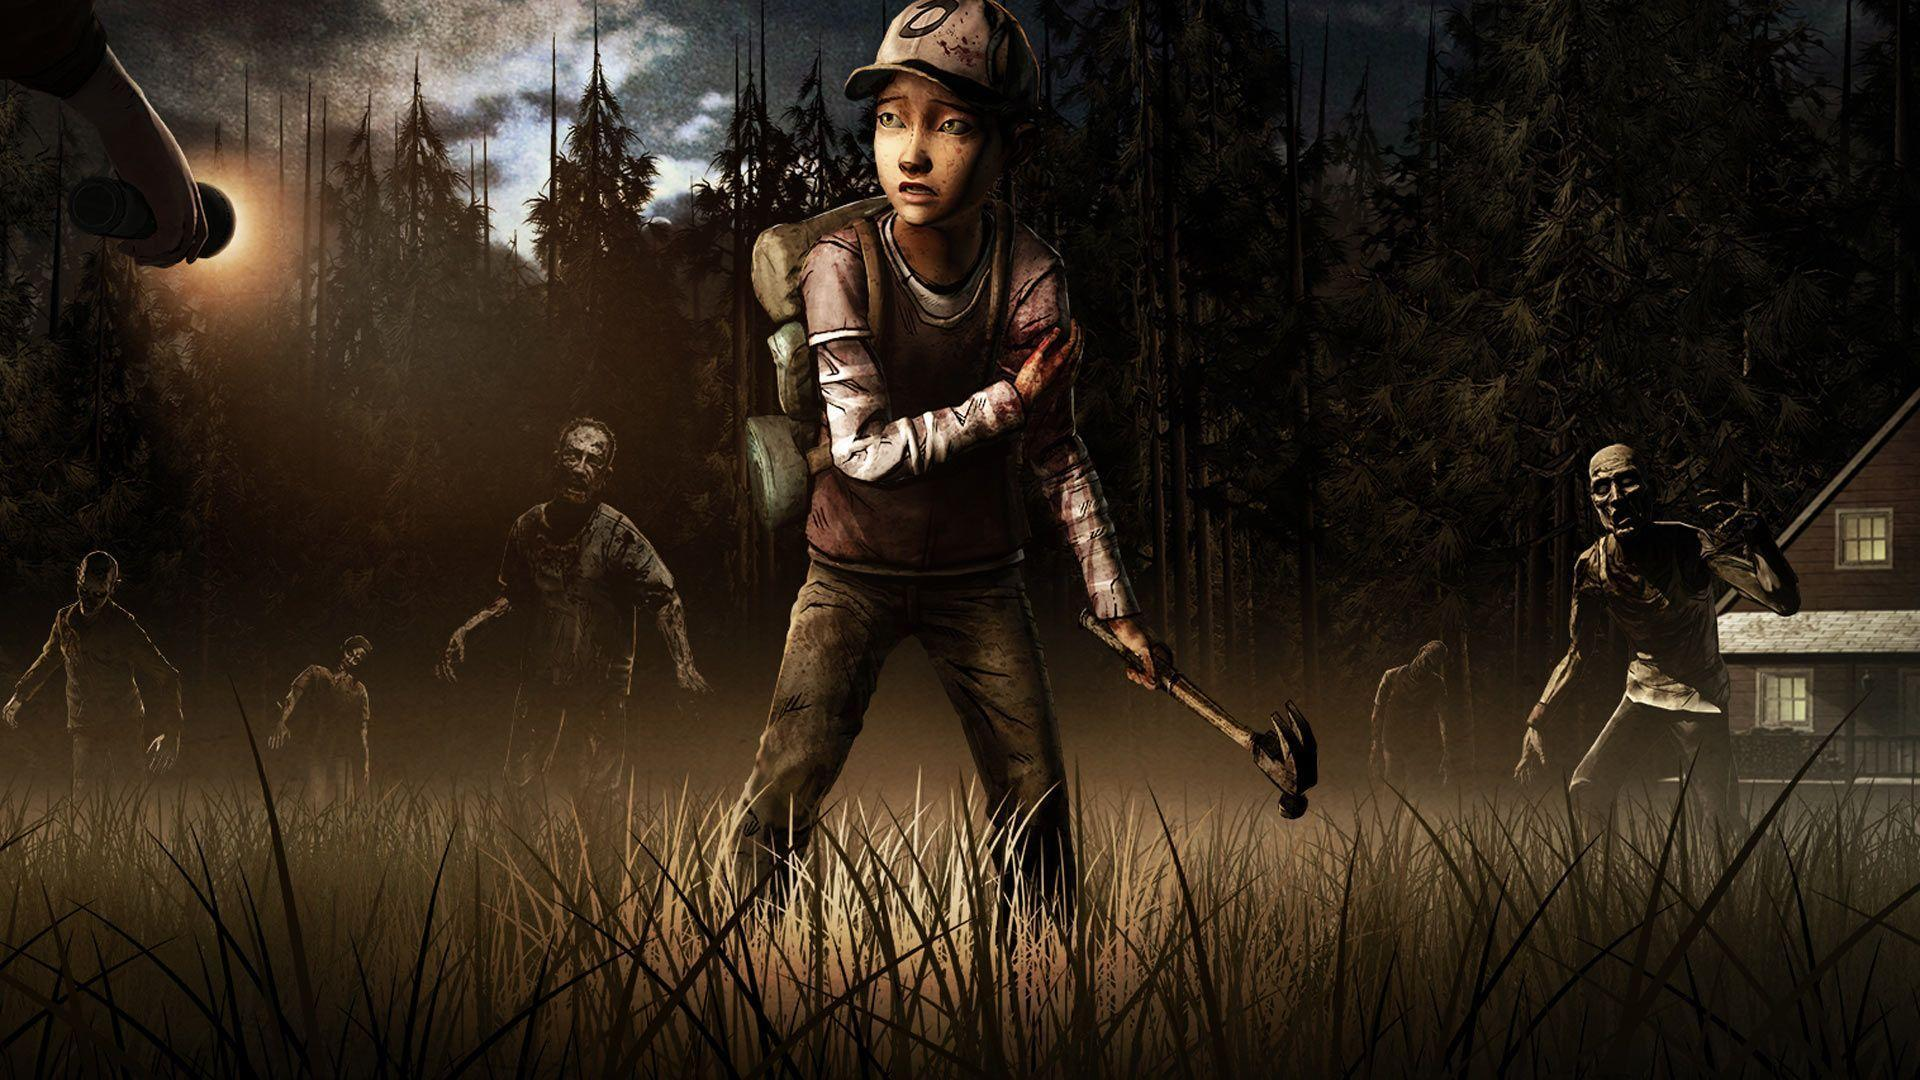 Images For > The Walking Dead Season 2 Game Wallpaper